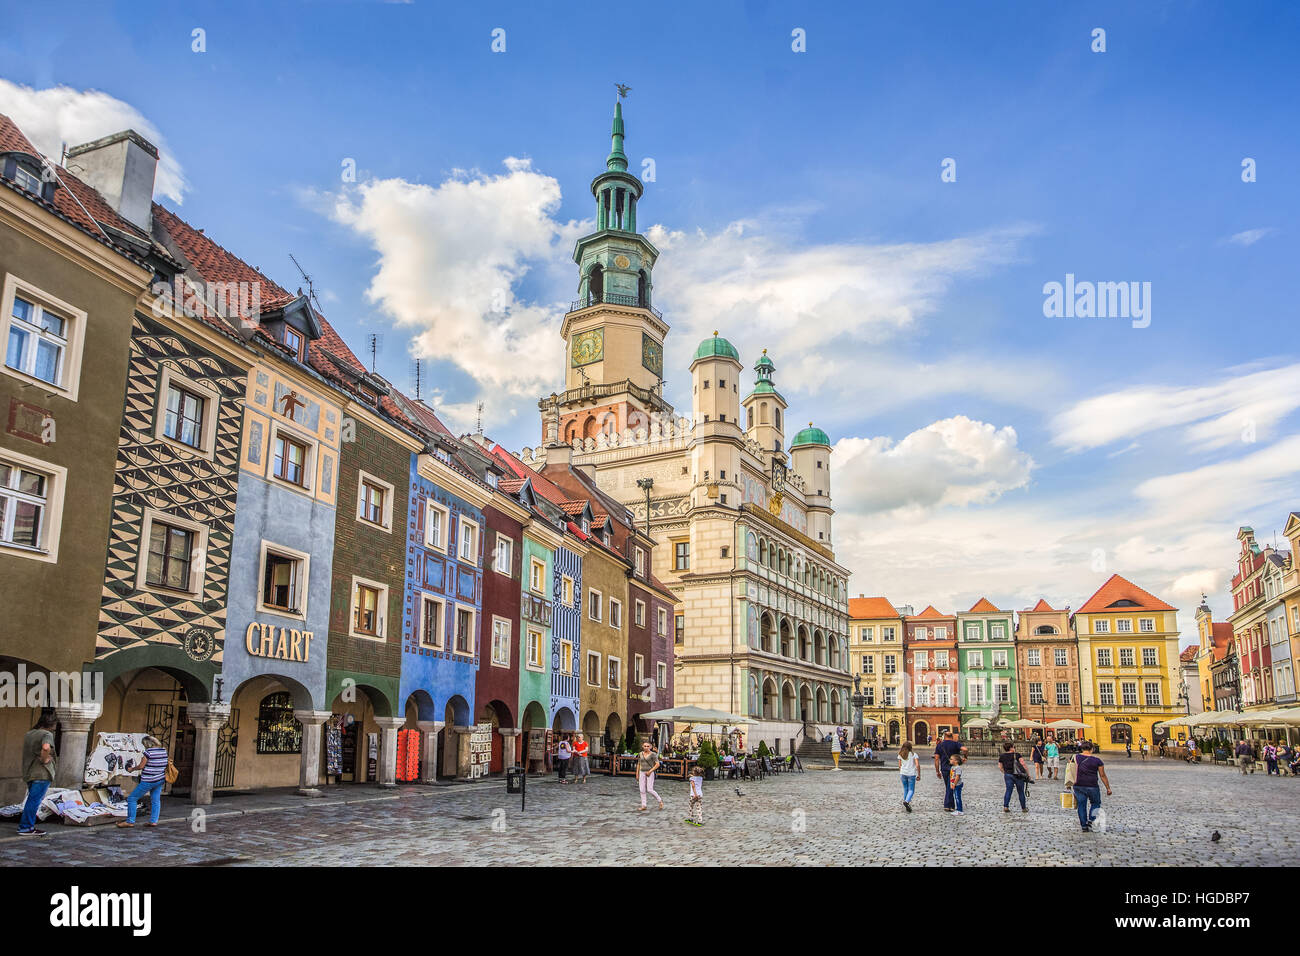 Poland, Poznan City, Stary Rynek, Town Hall Building, Picturesque houses, Old Town Square - Stock Image